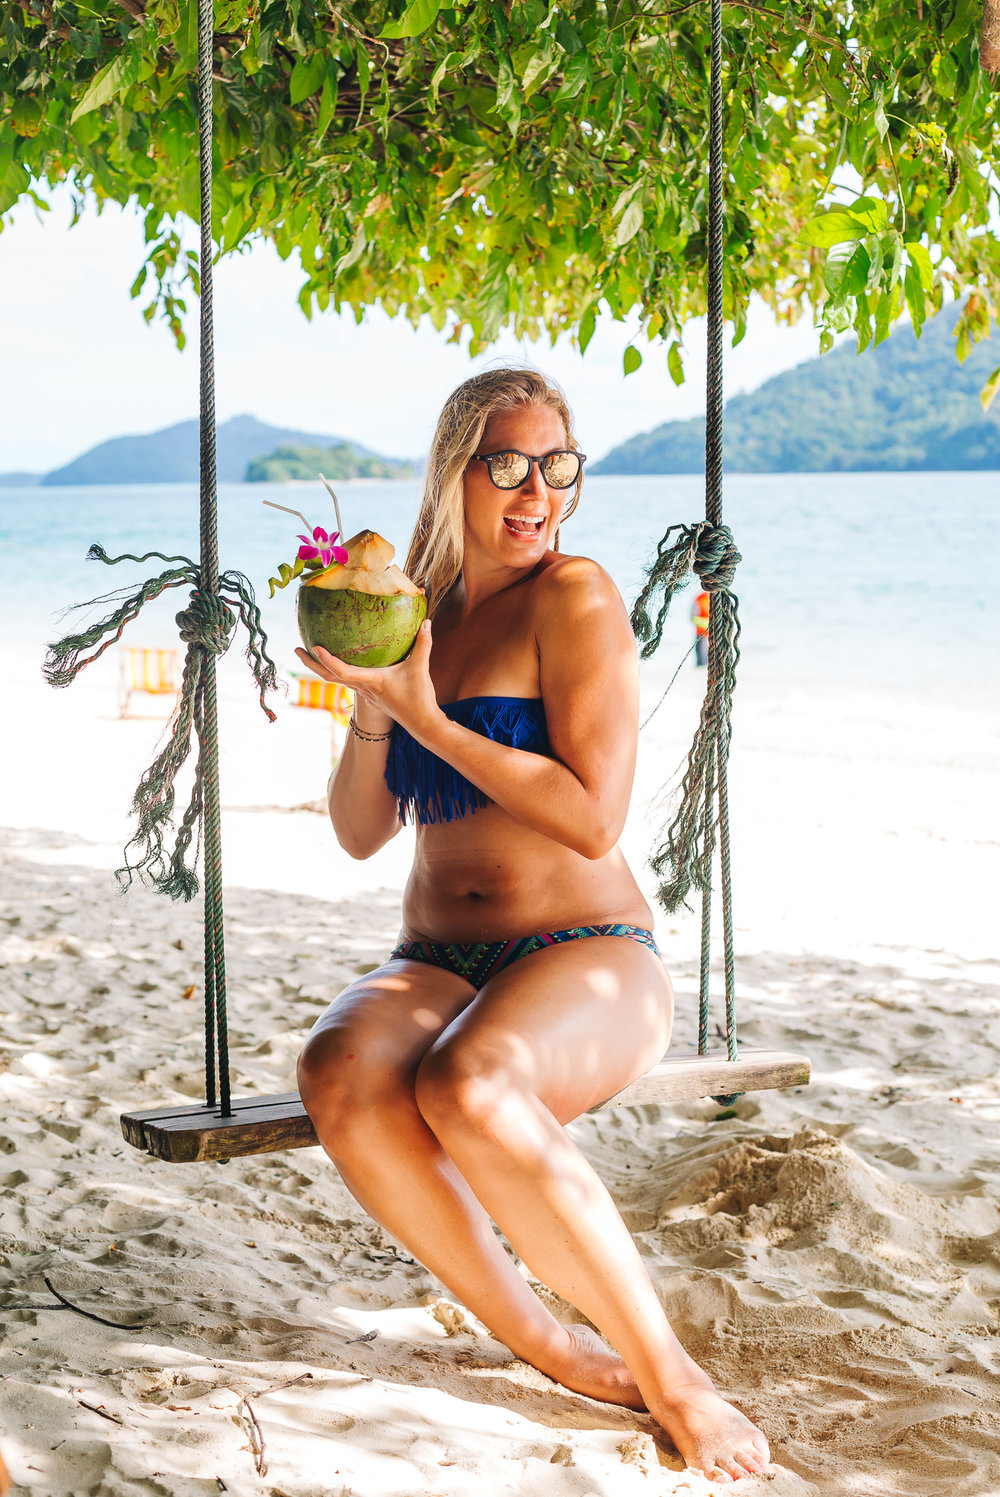 Island hopping isn't complete without a coconut drink